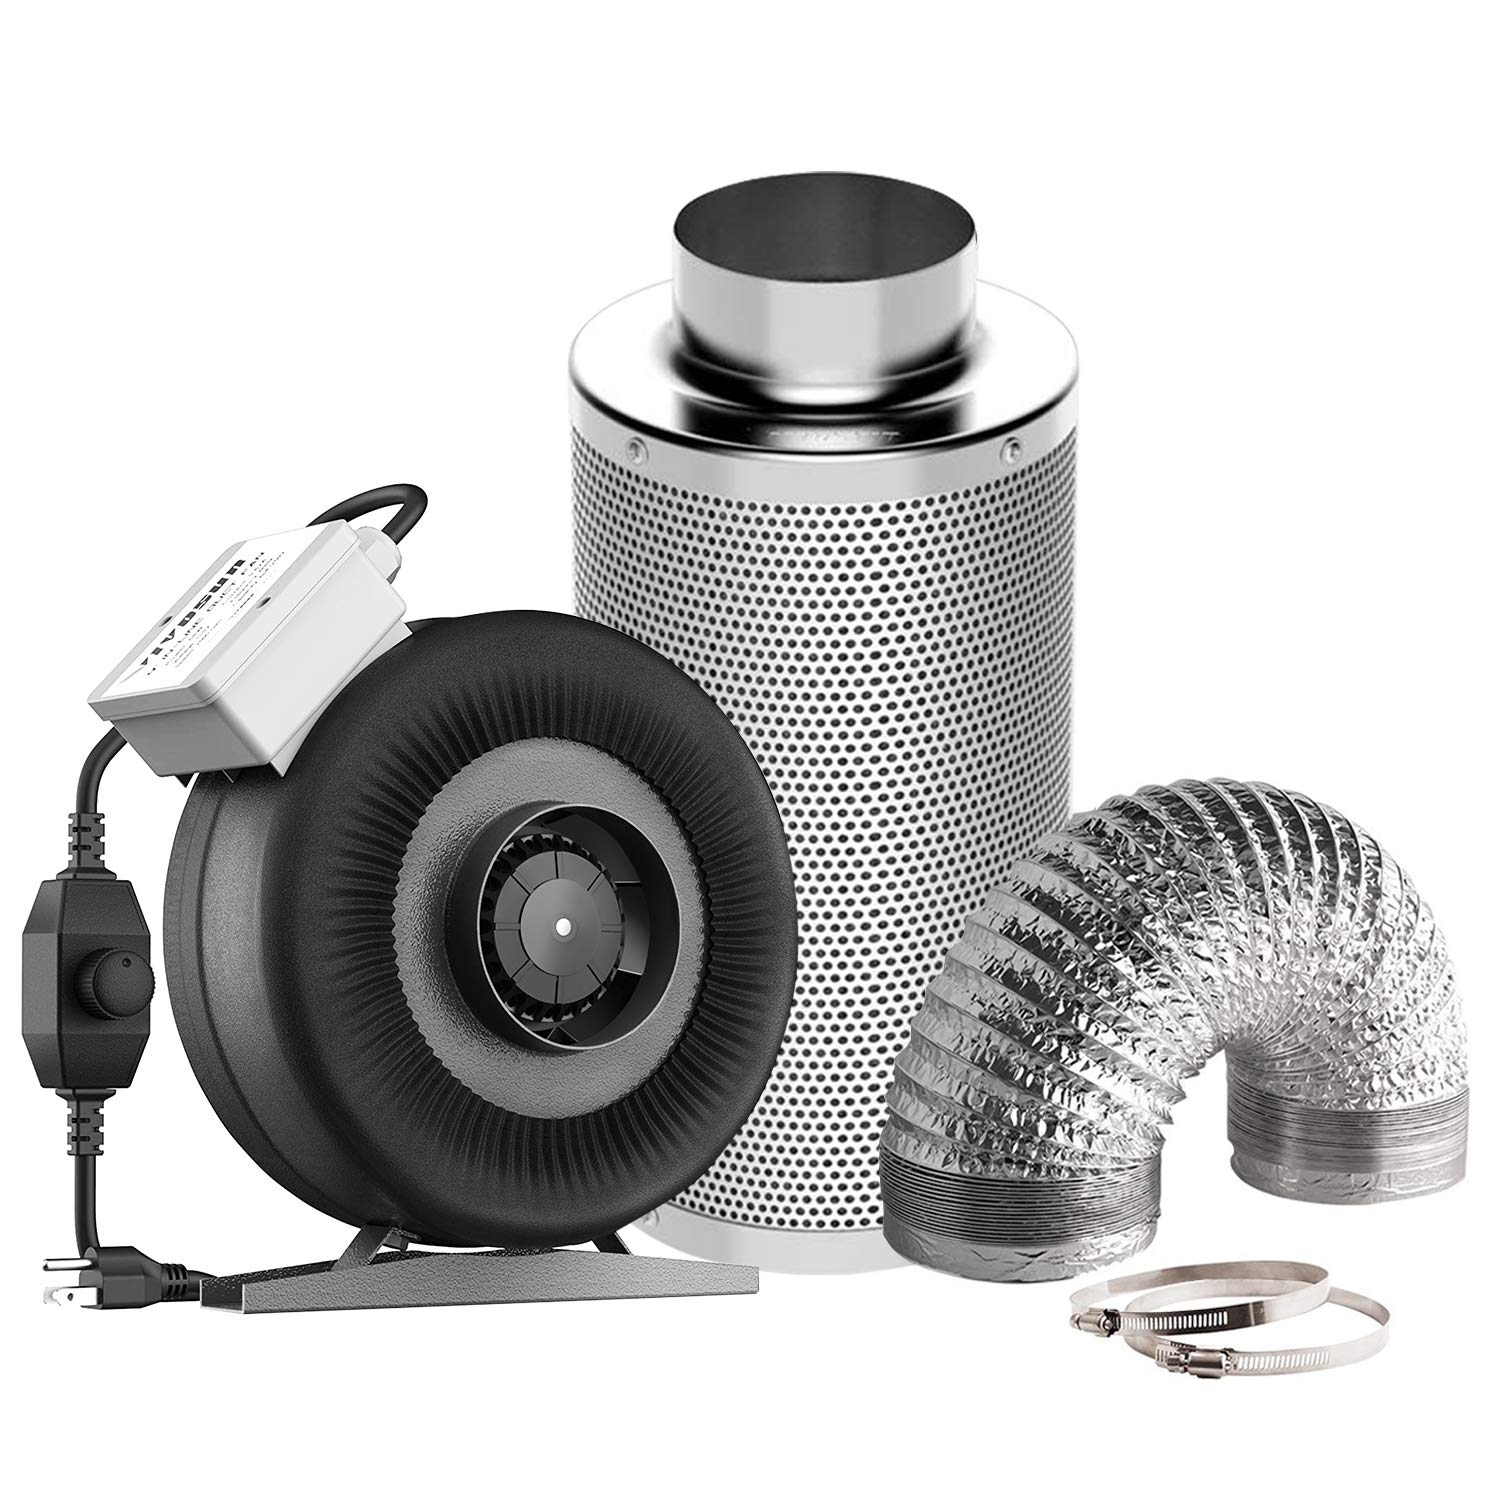 VIVOSUN Air Filtration Kit: 4 Inch 203 CFM Inline Fan with Speed Controller, 4'' Carbon Filter and 8 Feet of Ducting Combo by VIVOSUN